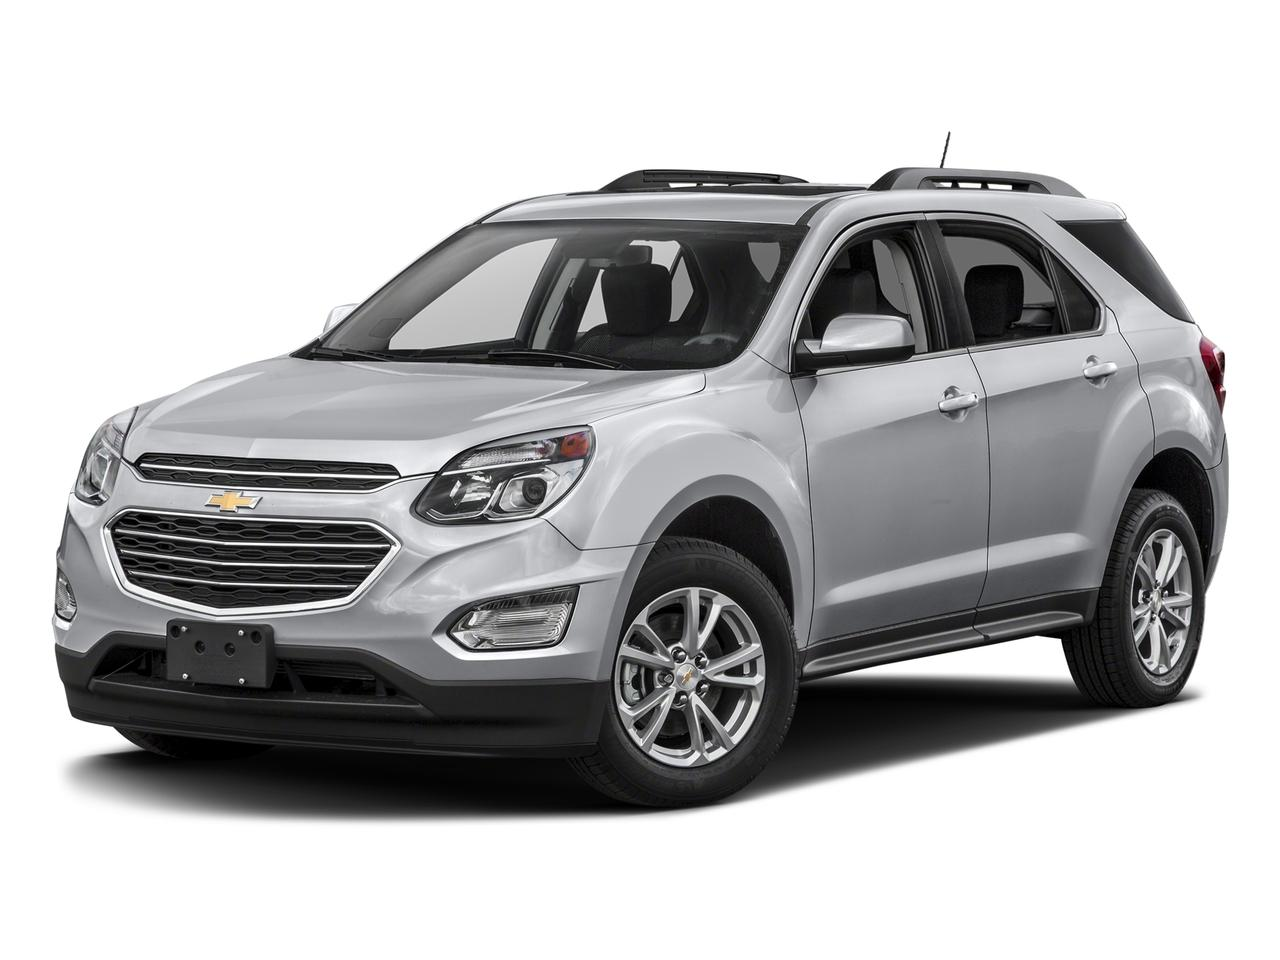 2017 Chevrolet Equinox Vehicle Photo in South Portland, ME 04106